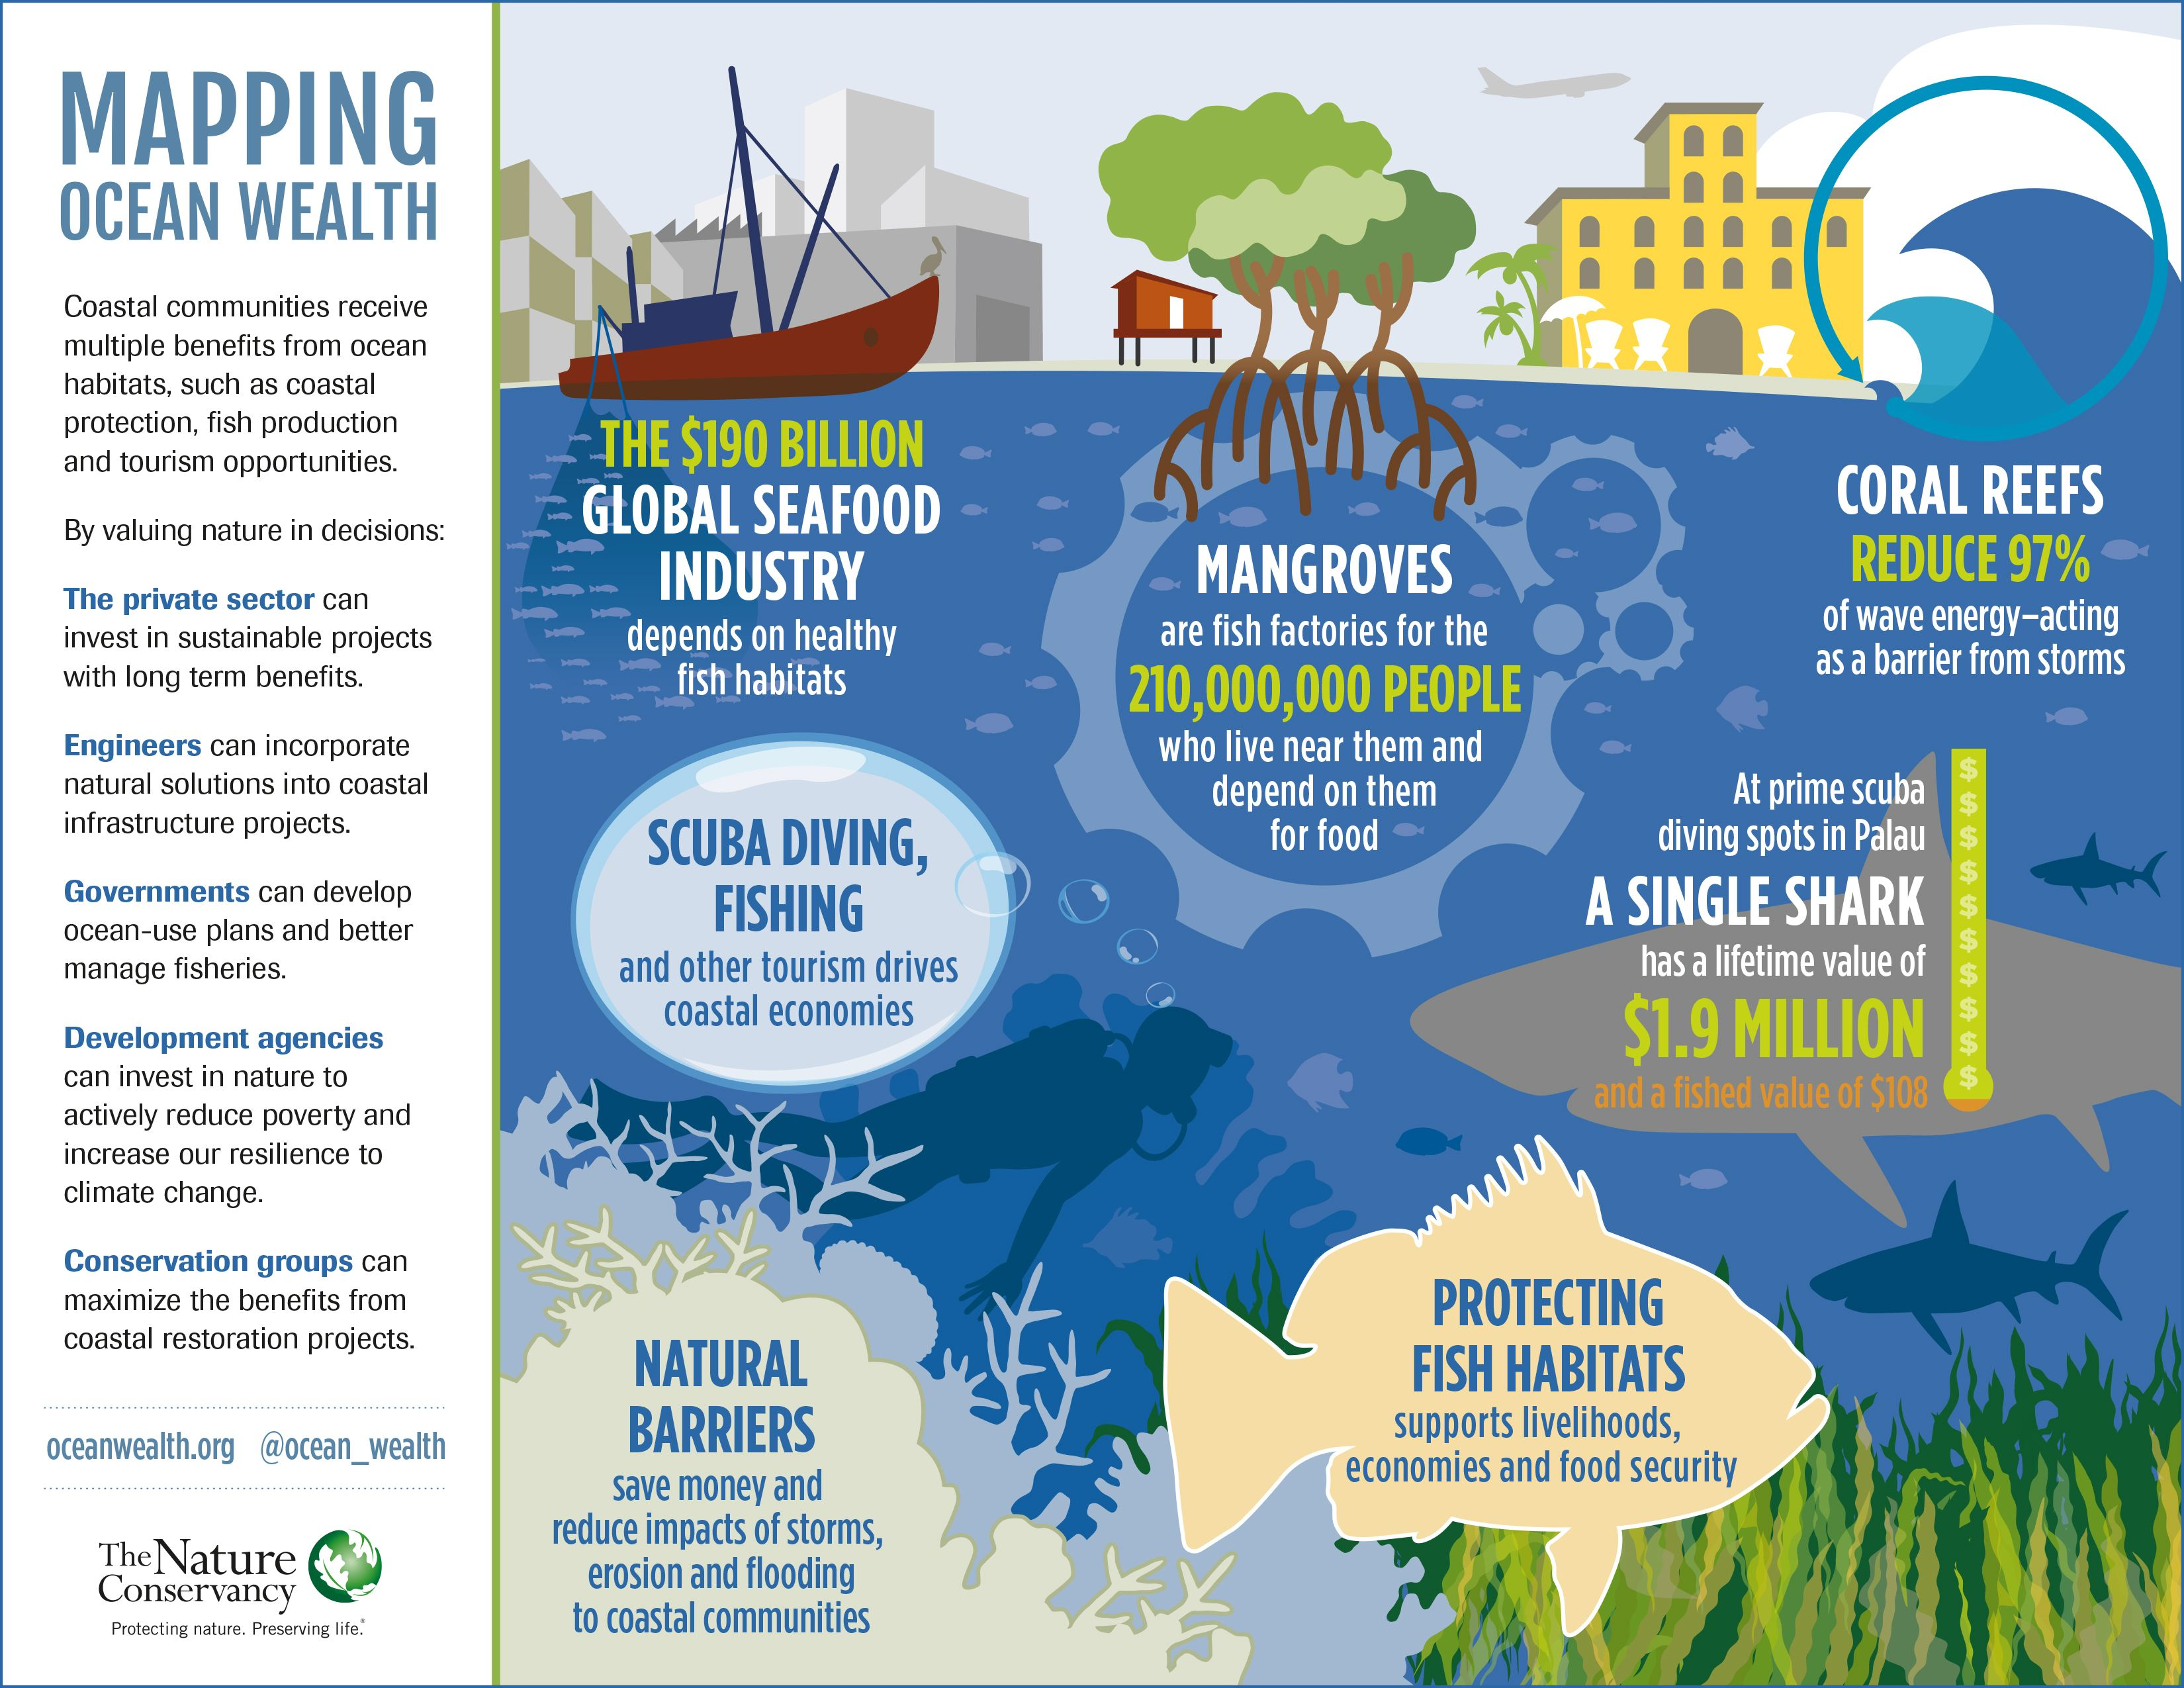 information about marine wealth The atlas of ocean wealth is the largest collection to date of information about the economic, social and cultural values of coastal and marine habitats from all over the world.